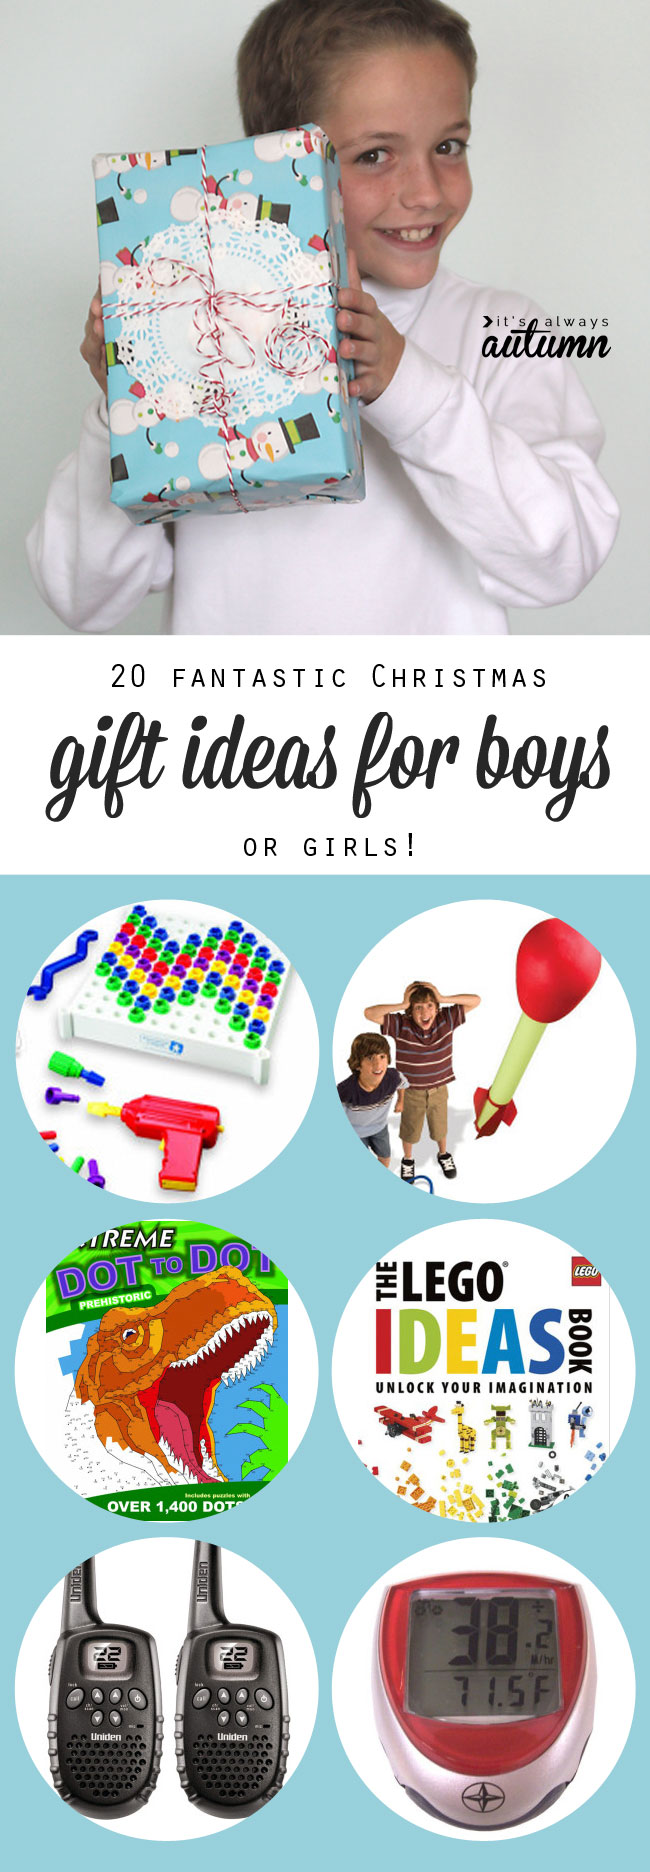 Dec 09,  · Looking for that perfect something to get for your perfect someone? Don't worry - I've got you covered! GIFT IDEAS FOR YOUR BOYFRIEND, BEST FRIEND, BROTHER, DAD, HUSBAND, & .